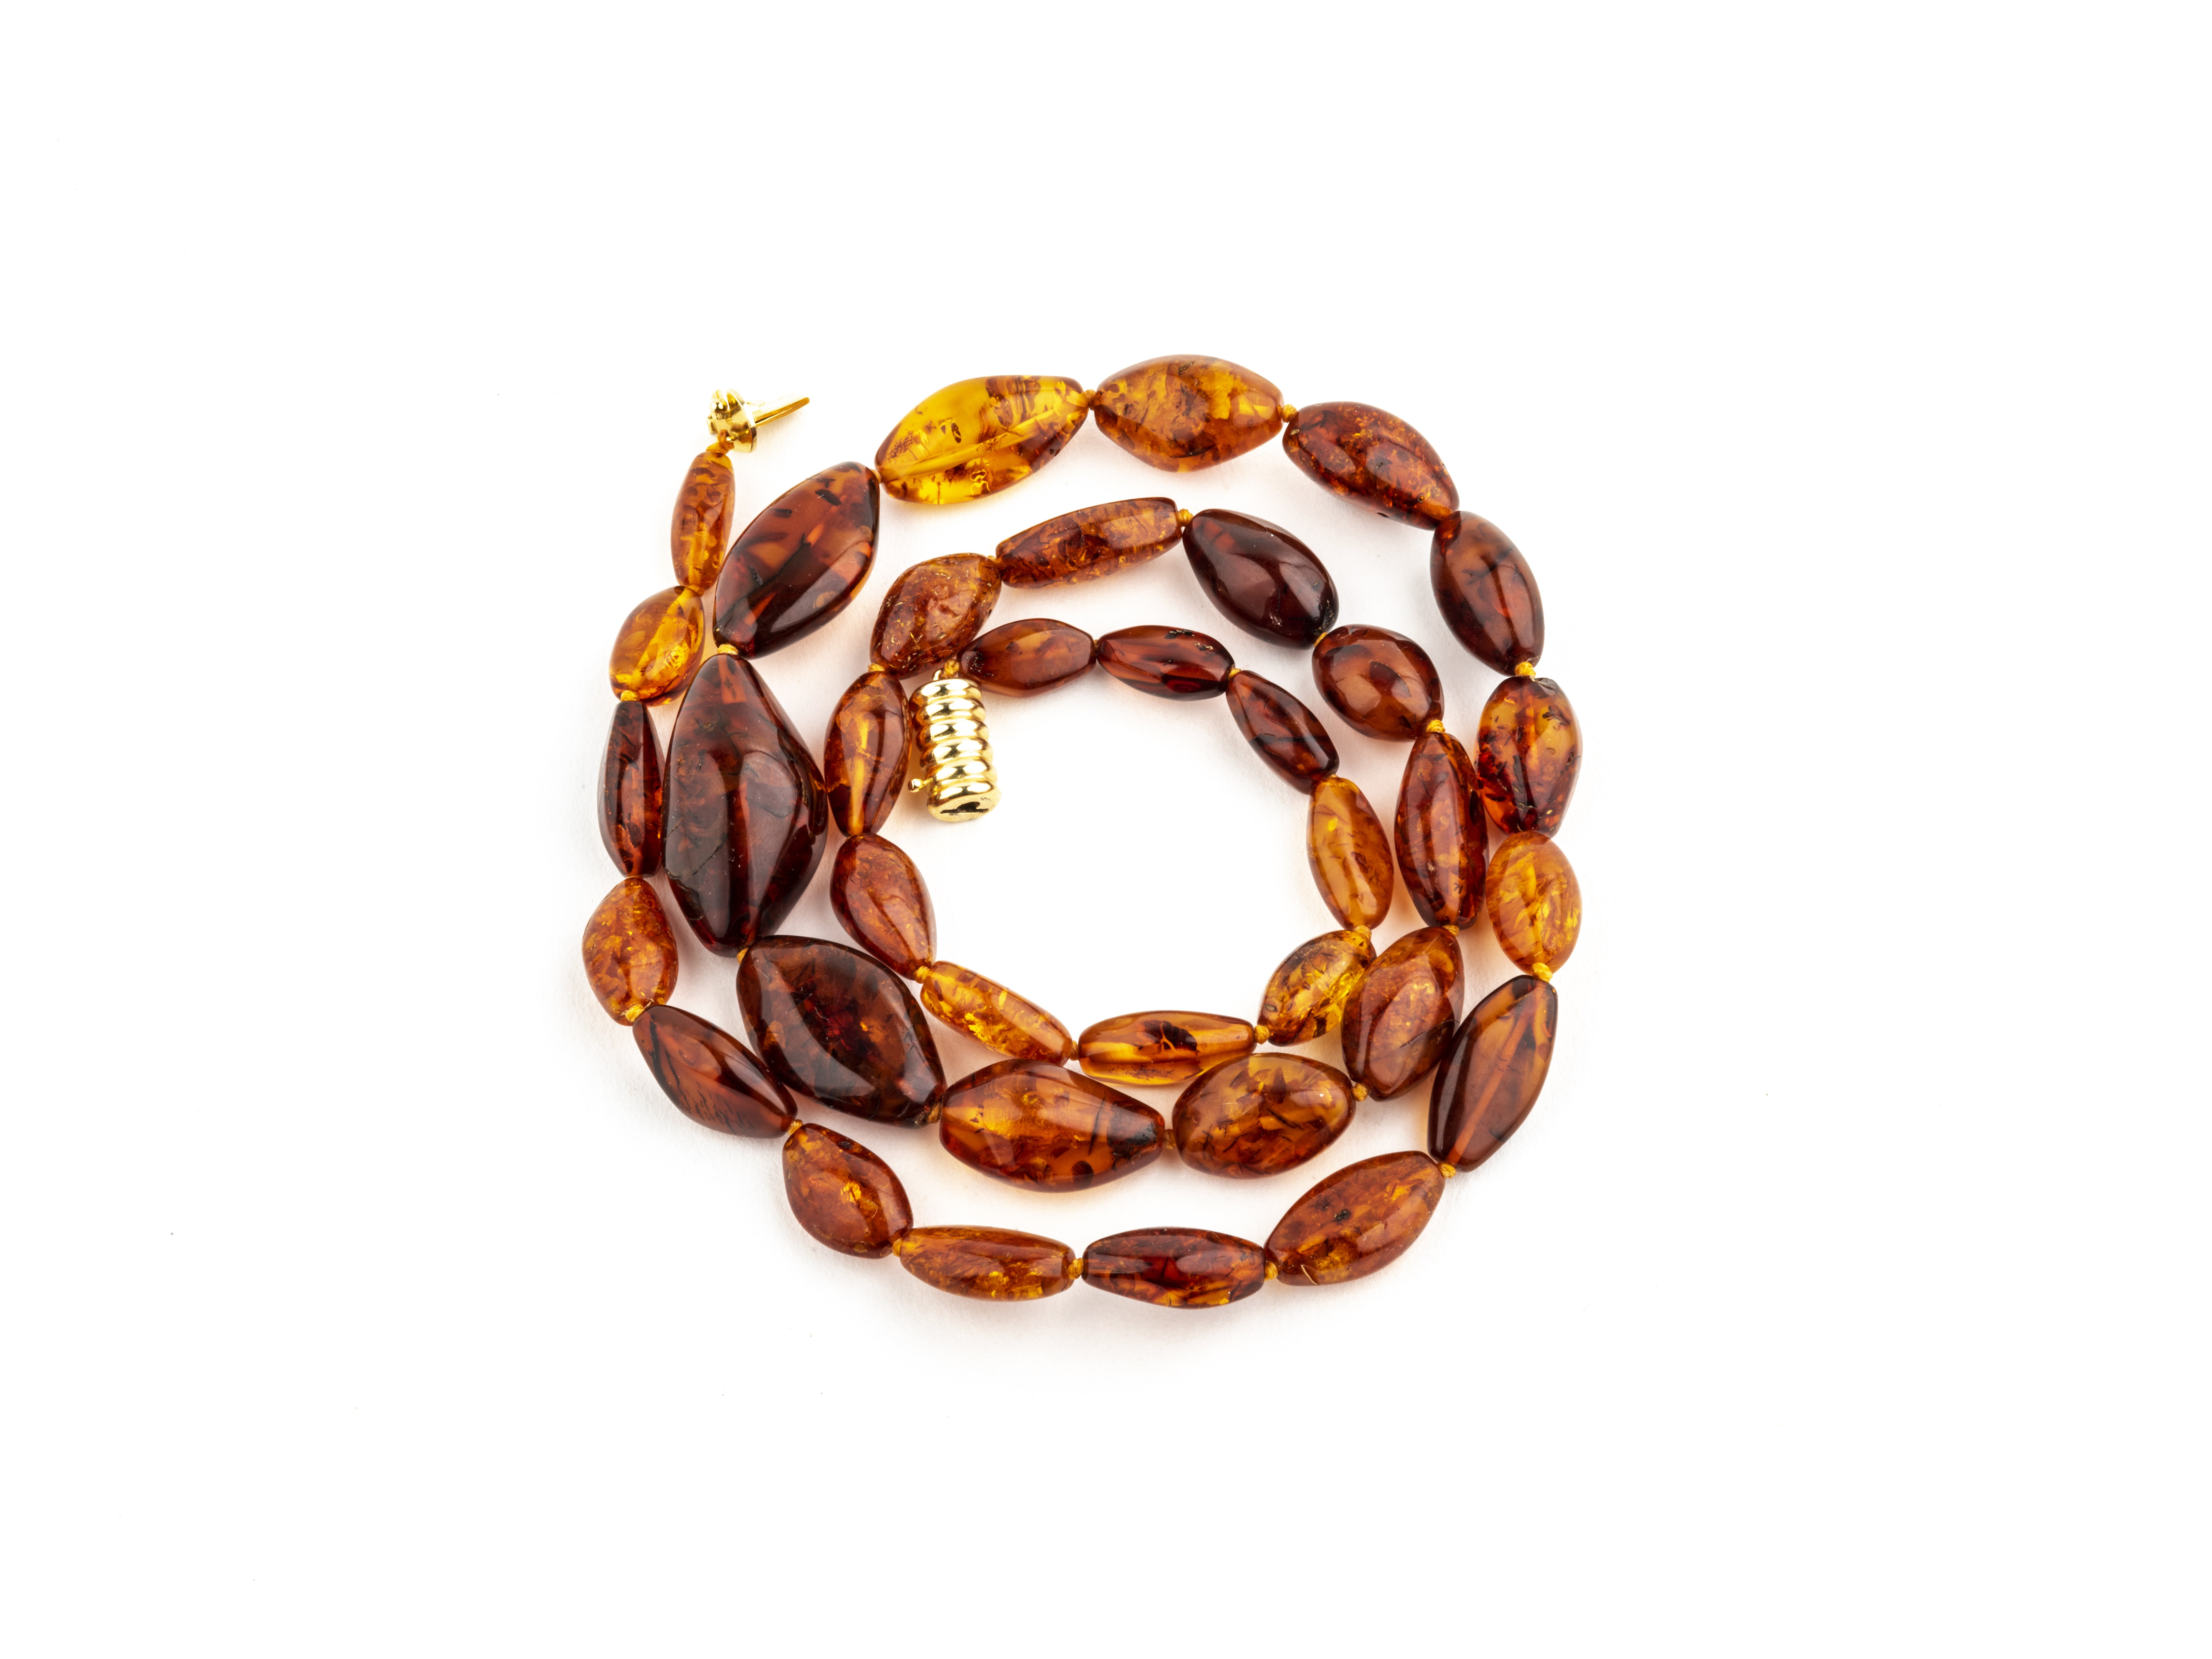 Amber Jewelry Necklace Vintage Bead Form 1